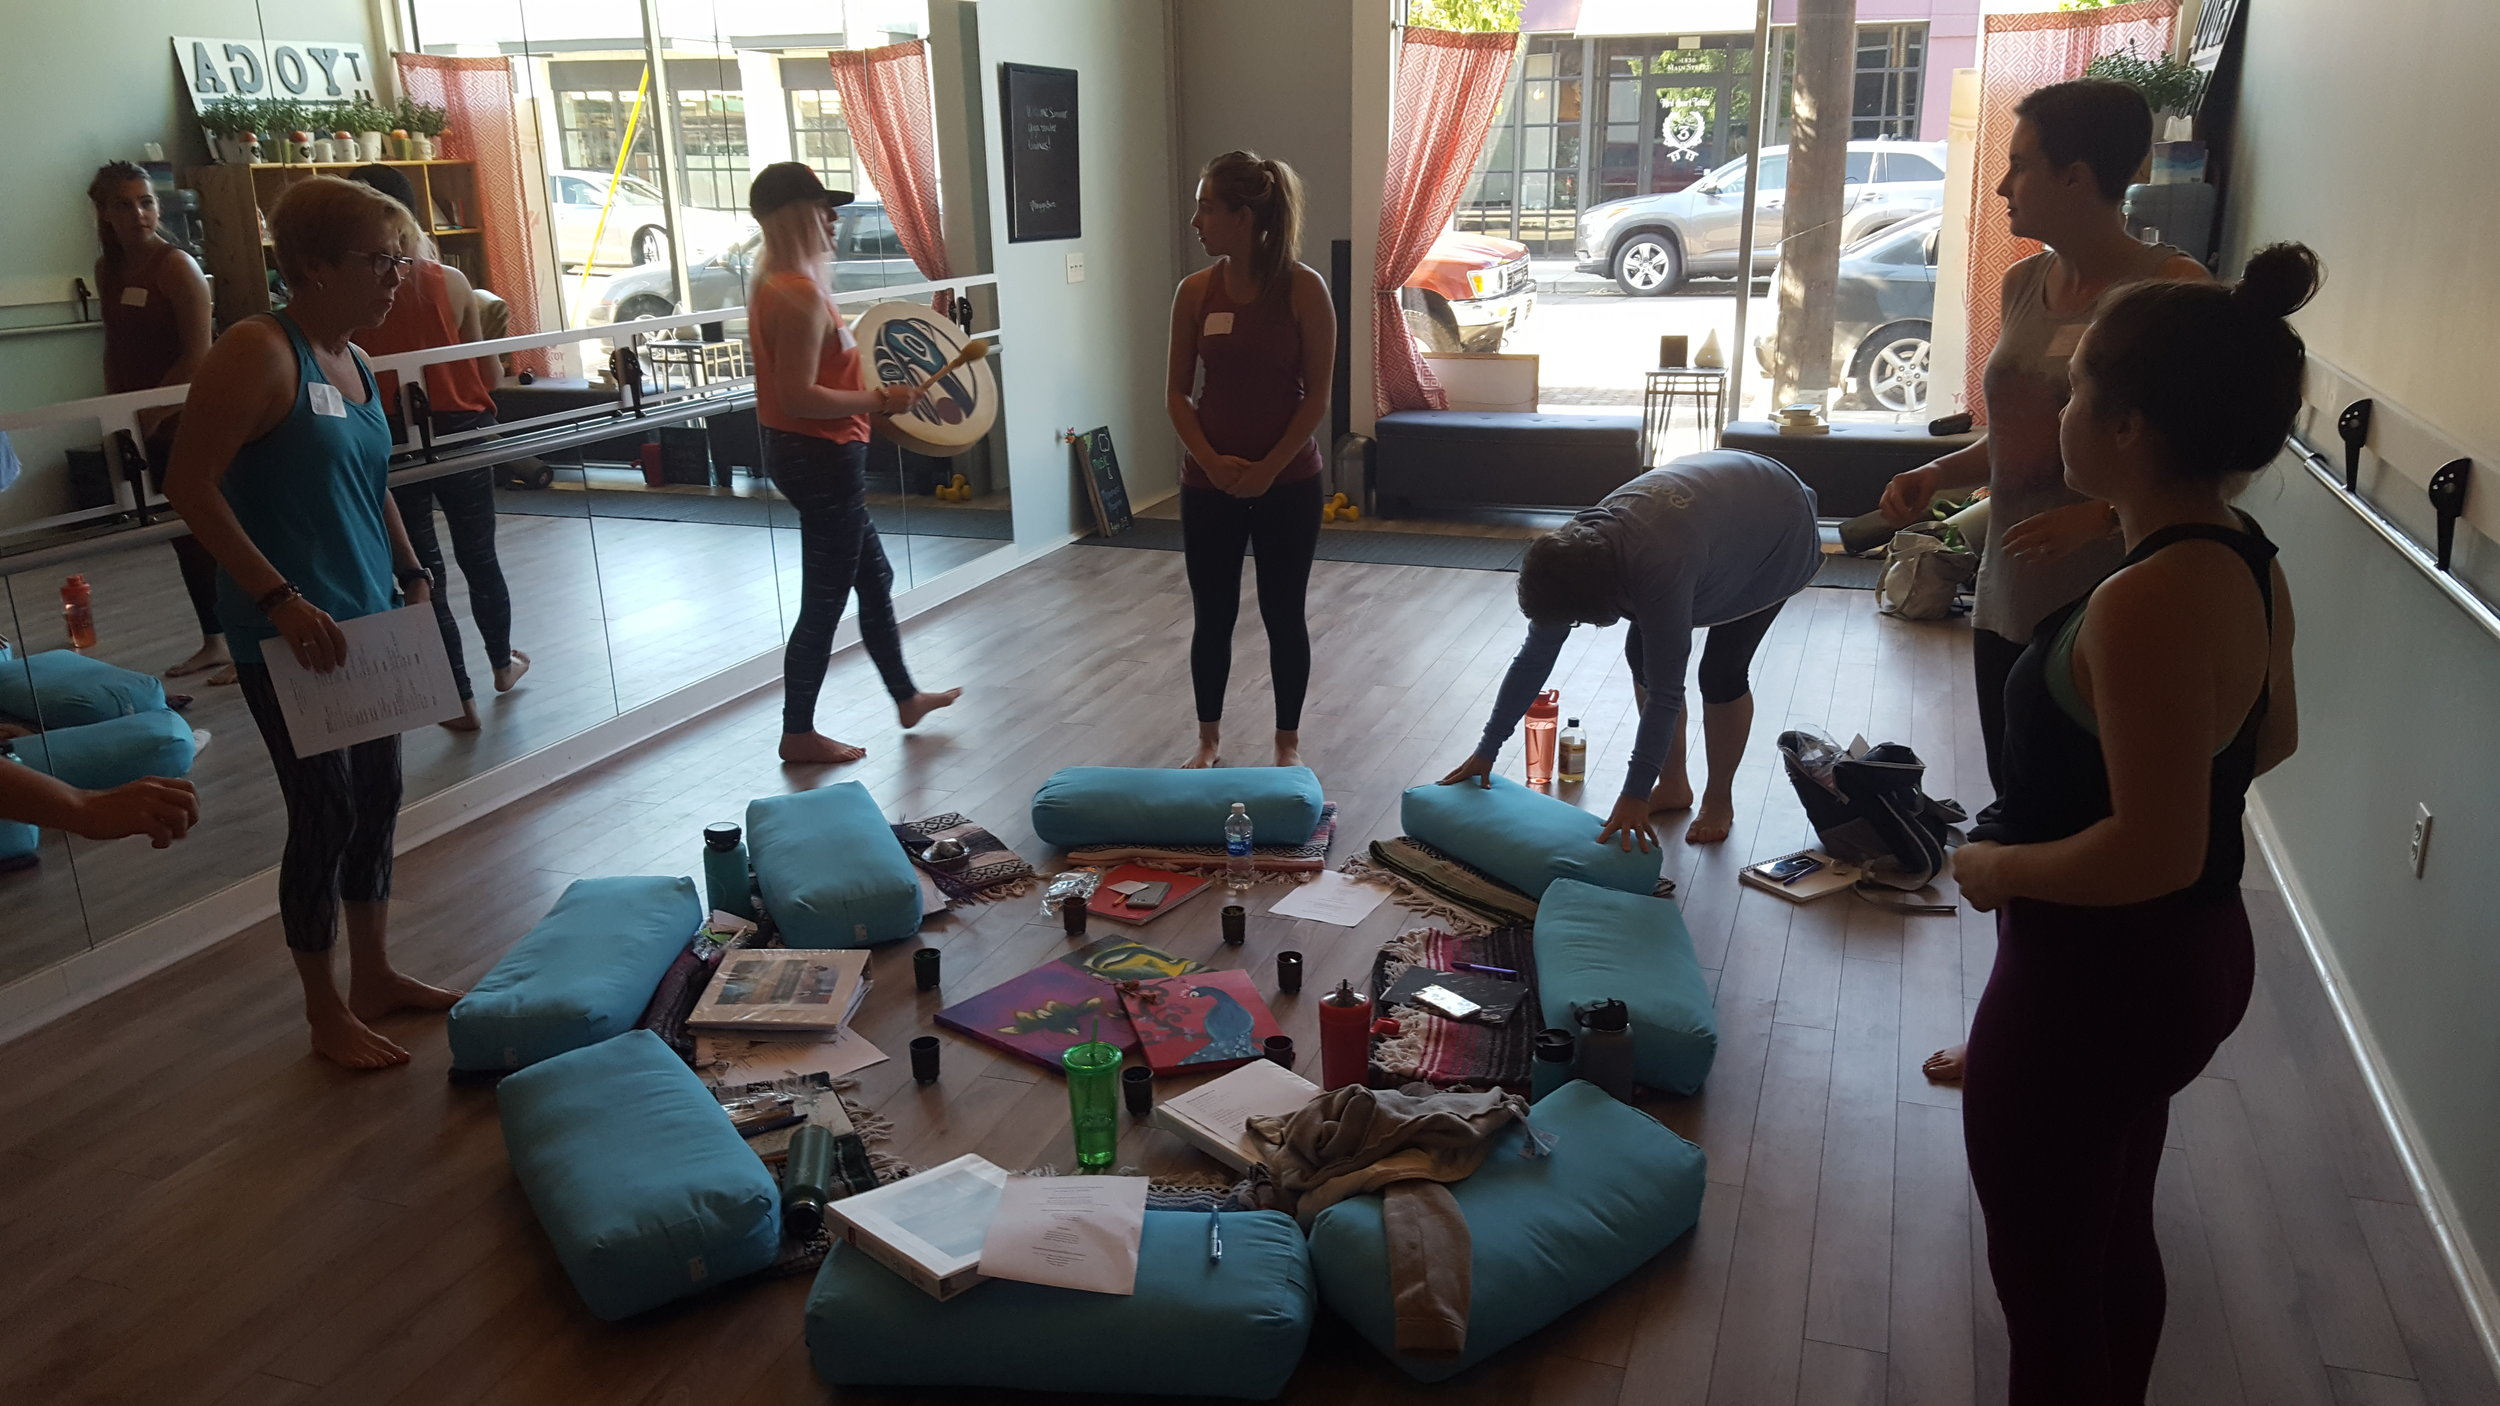 200 hr Yoga Teacher Training and body work near Vancouver WA and Portland OR